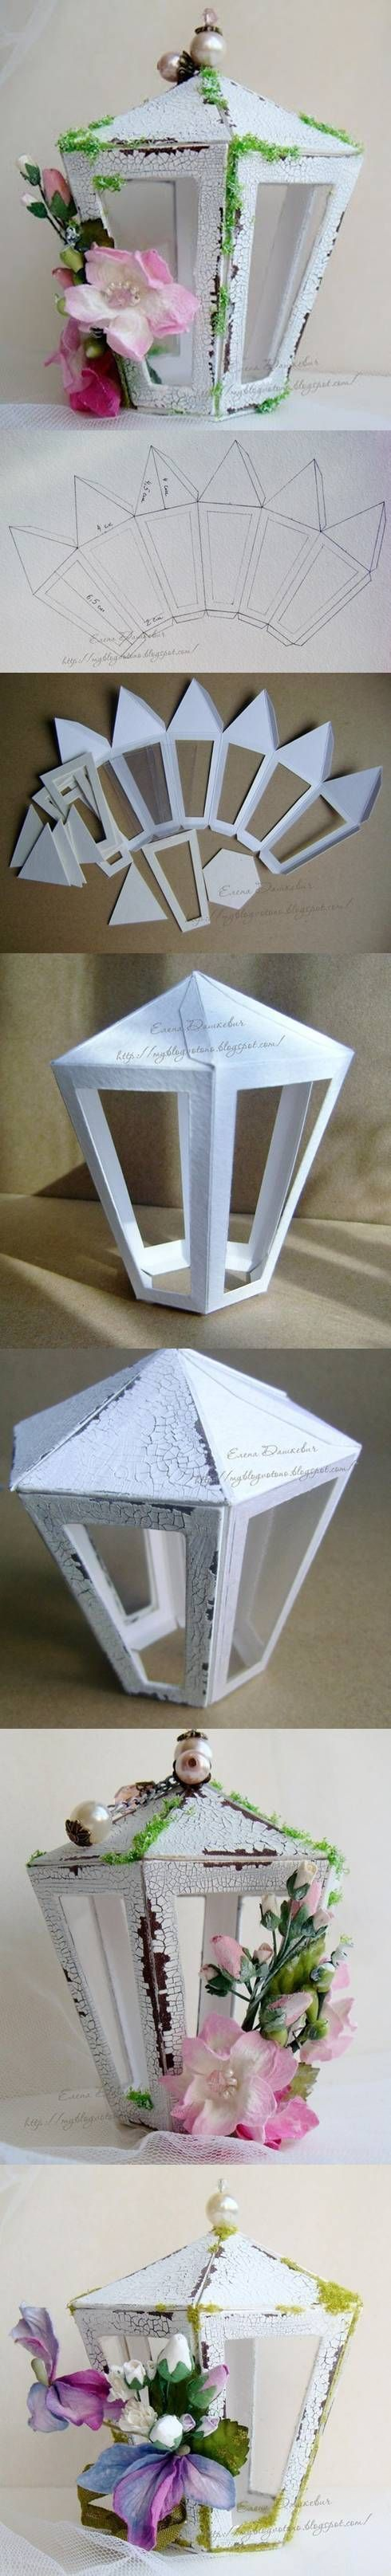 DIY Cardboard Latern Template